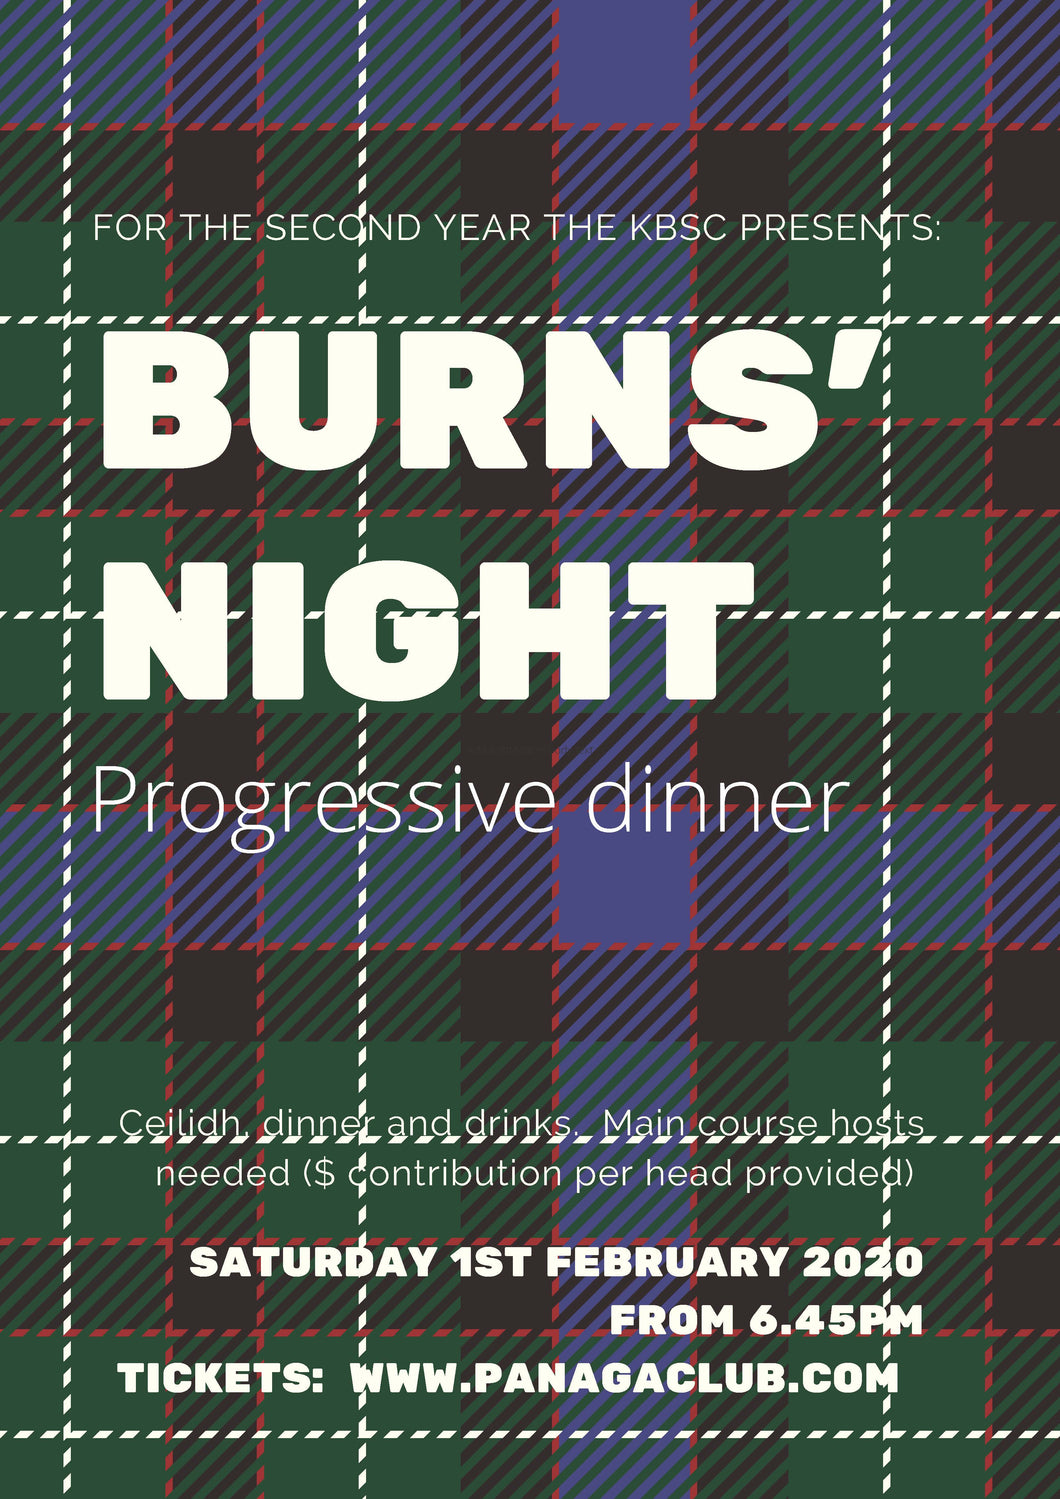 Burns Night Progressive Dinner 1 February 2020